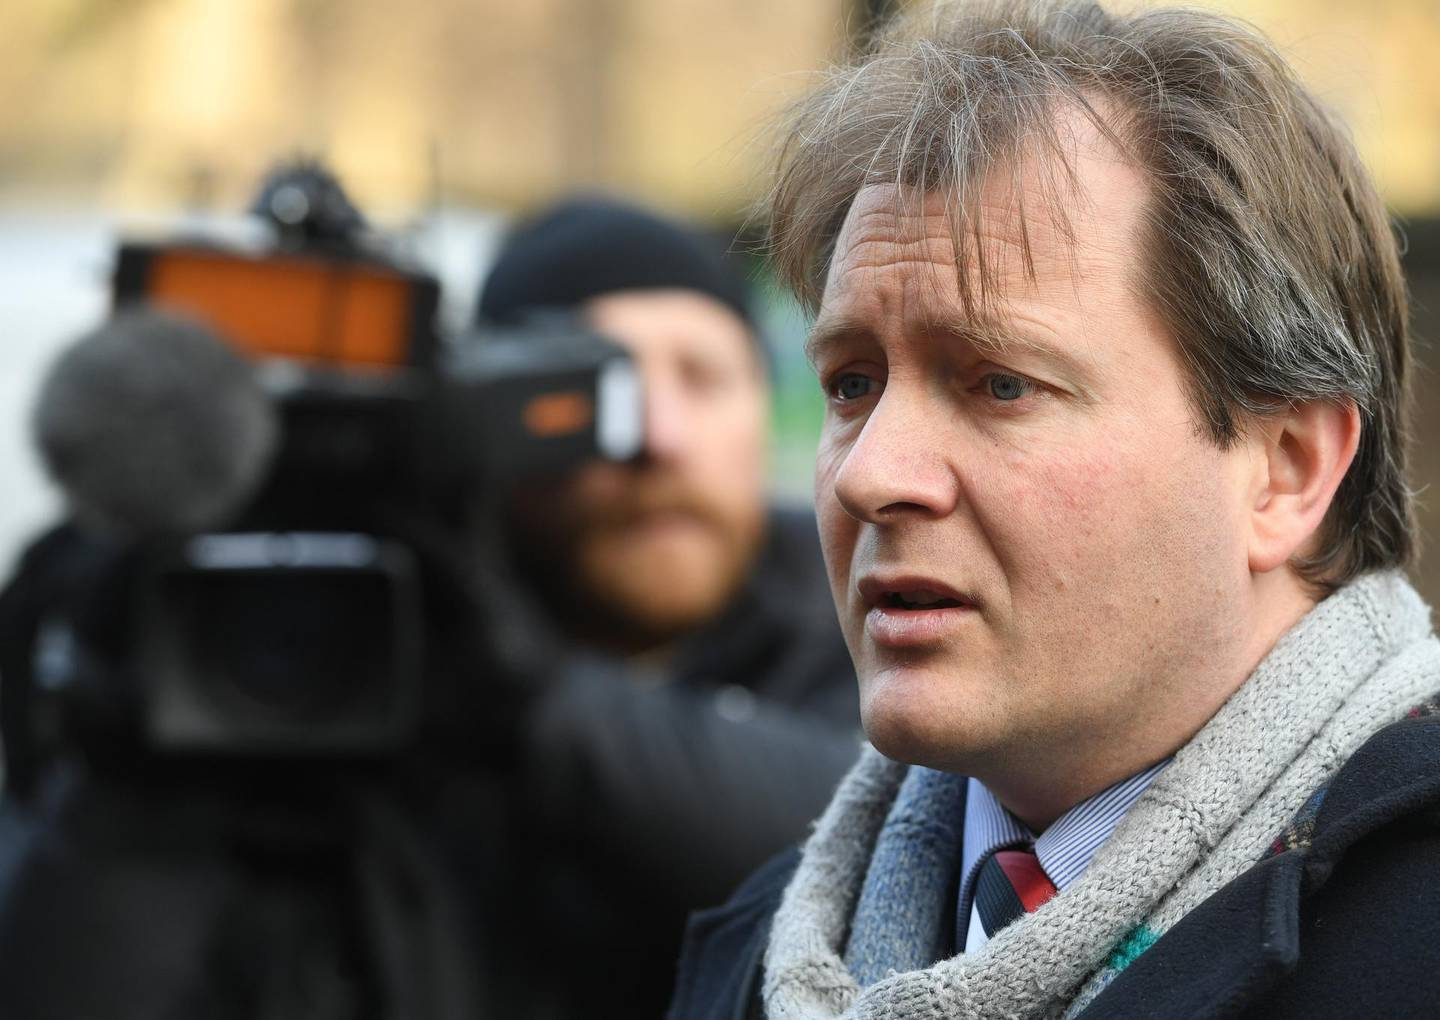 epa06549811 Richard Ratcliffe, the husband of the jailed UK-Iranian woman Nazanin Zaghari-Ratcliffe, arrives to speak to reporters before delivering a letter to the Iranian Embassy in Knightsbridge, London, Britain, 21 February 2018. Nazanin Zaghari-Ratcliffe was arrested in Iran on spying charges in April 2016.  EPA/FACUNDO ARRIZABALAGA